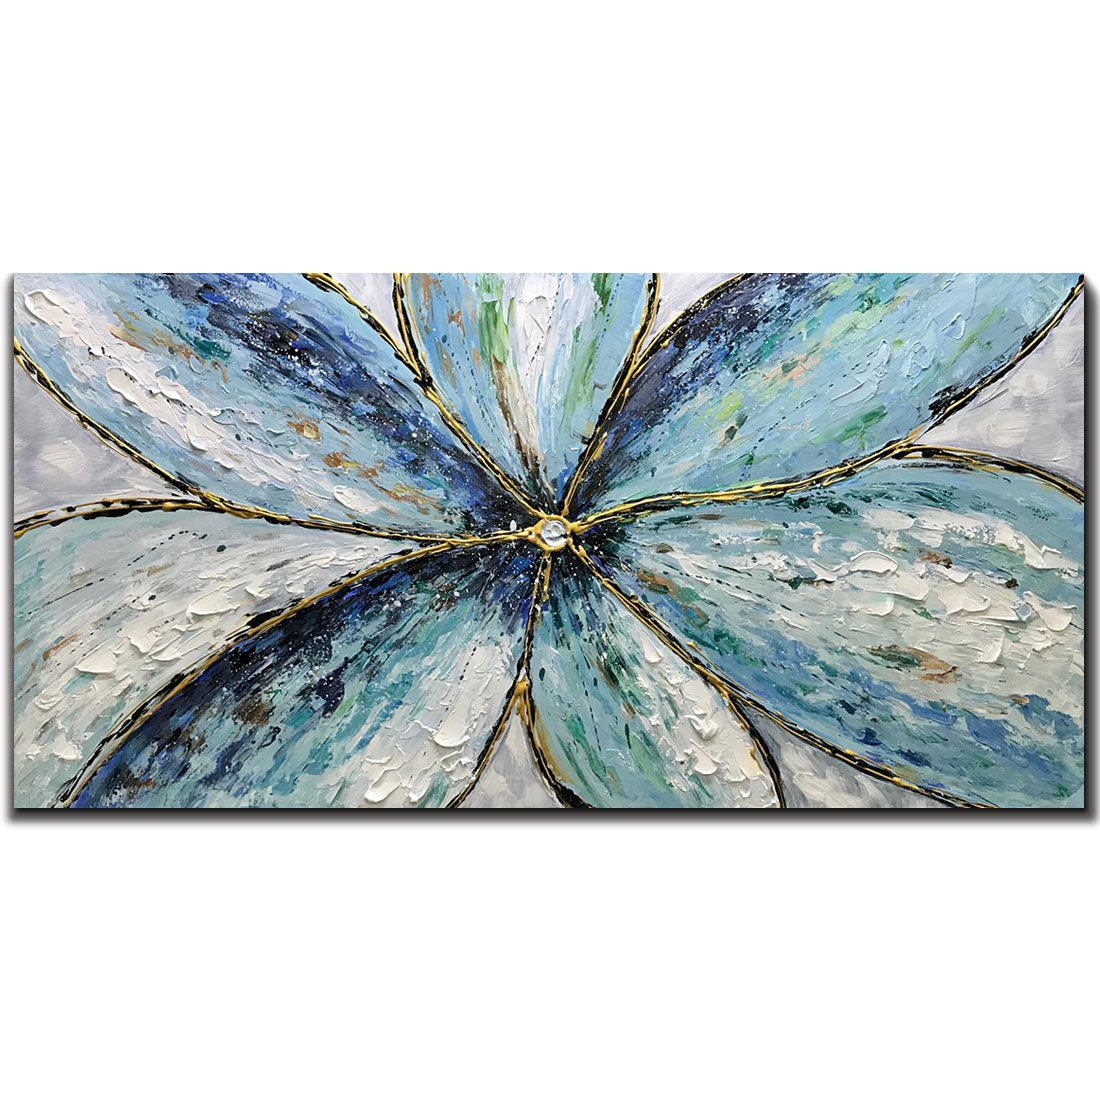 Metuu Modern Canvas Paintings, Texture Palette Knife Orchid Flowers Paintings Modern Home Decor Wall Art Painting Colorful 3D Flowers Wood Inside Framed Ready to hang 24x48inch